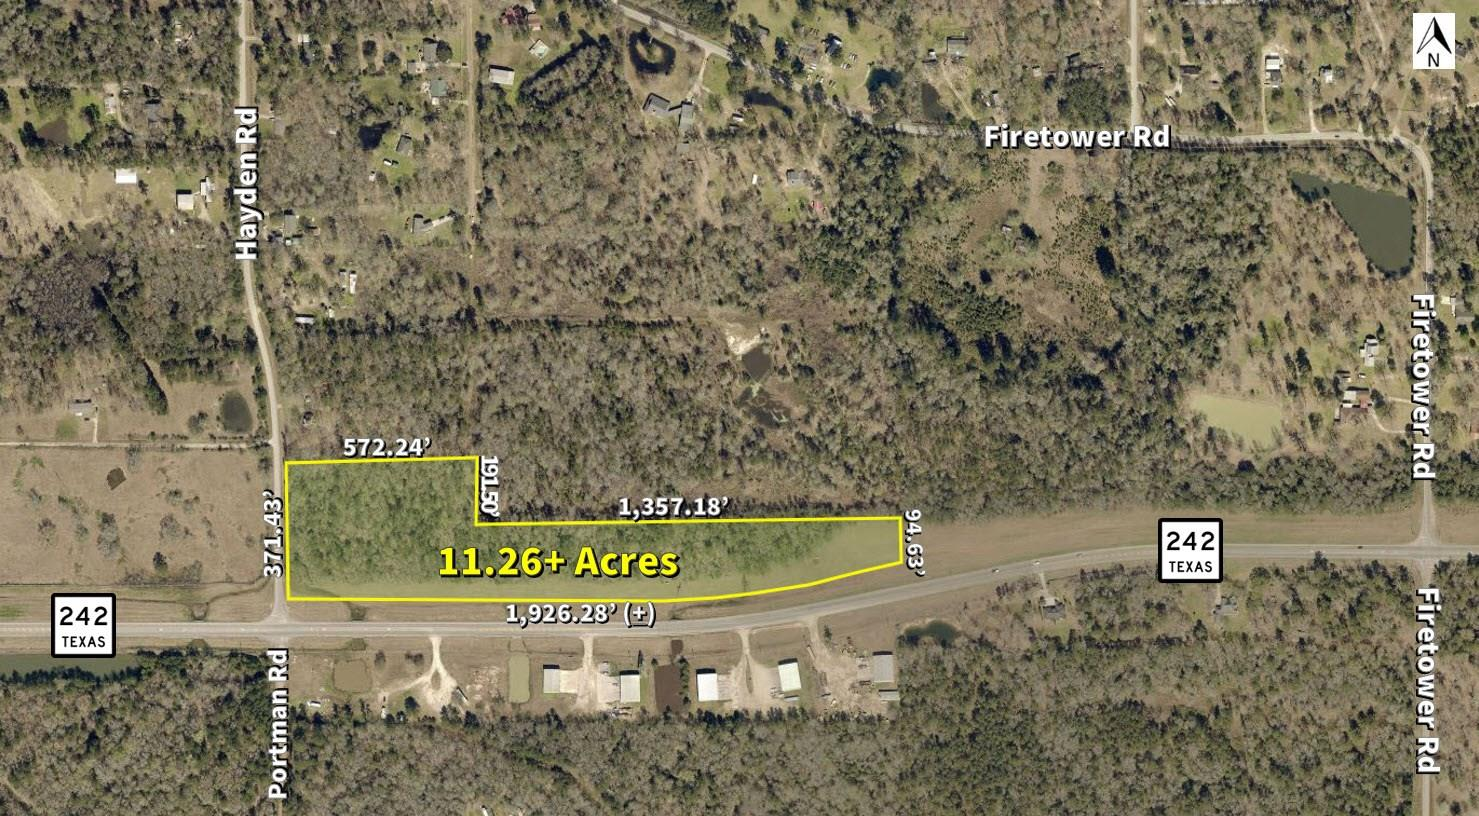 000 Highway 242 Property Photo - Conroe, TX real estate listing